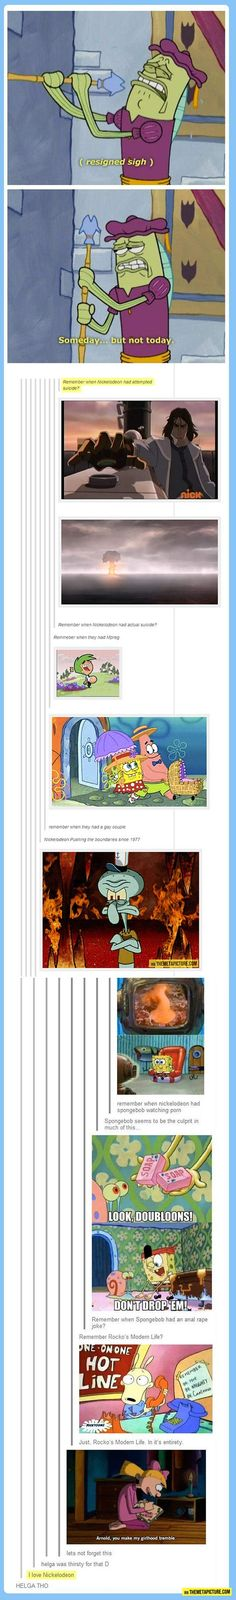 The secret side of Nickelodeon…oh geez. Right in the childhood LOL